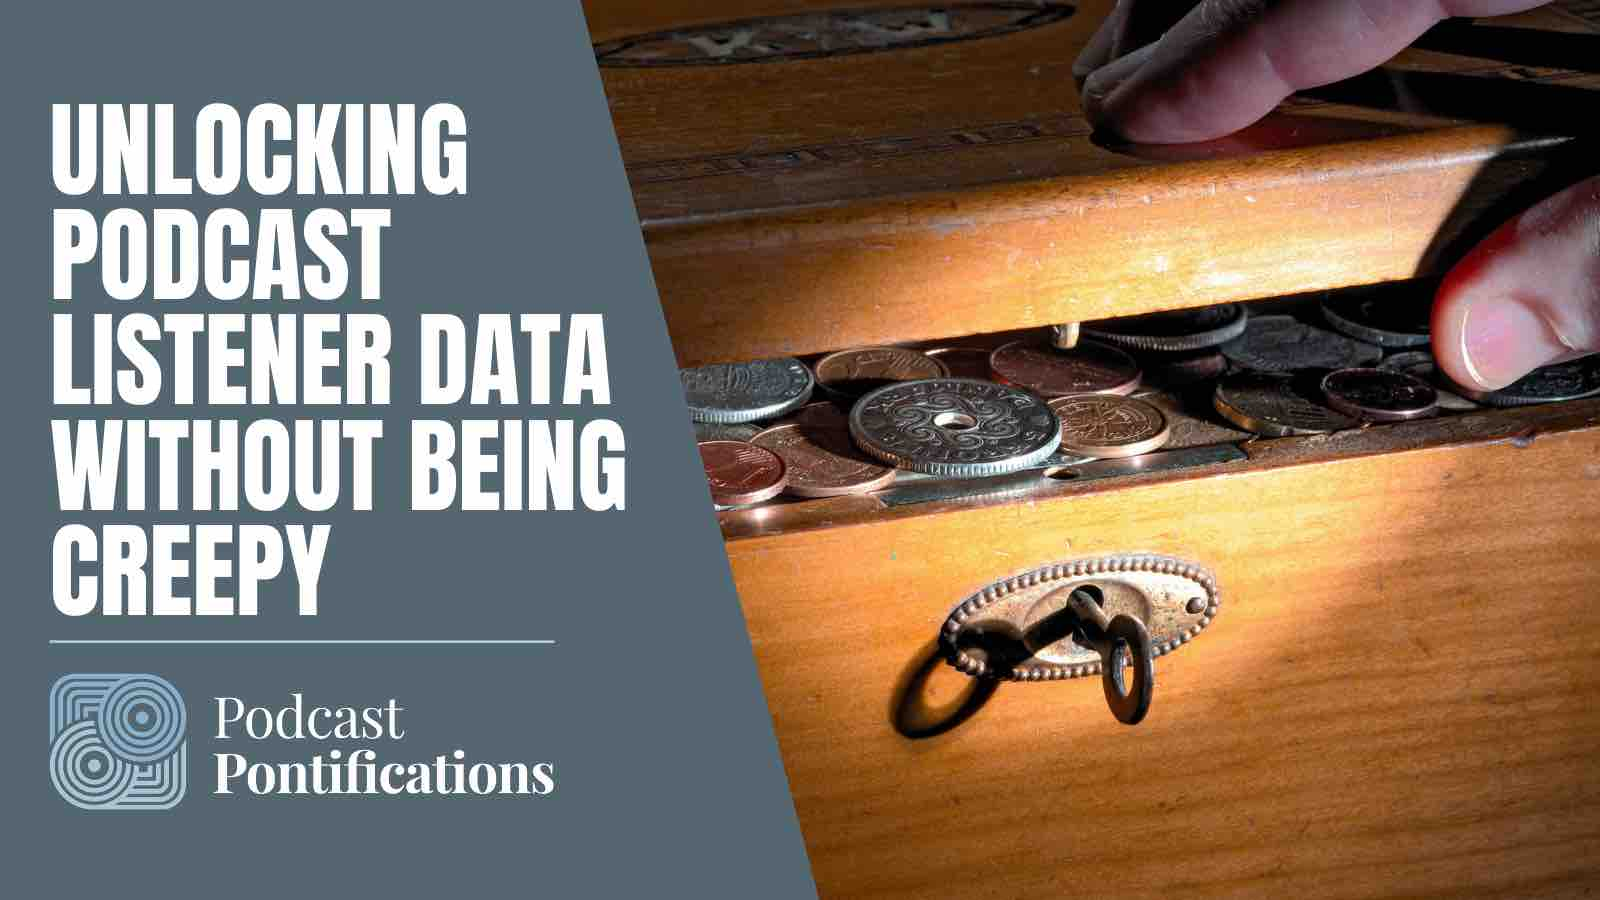 Unlocking Podcast Listener Data Without Being Creepy